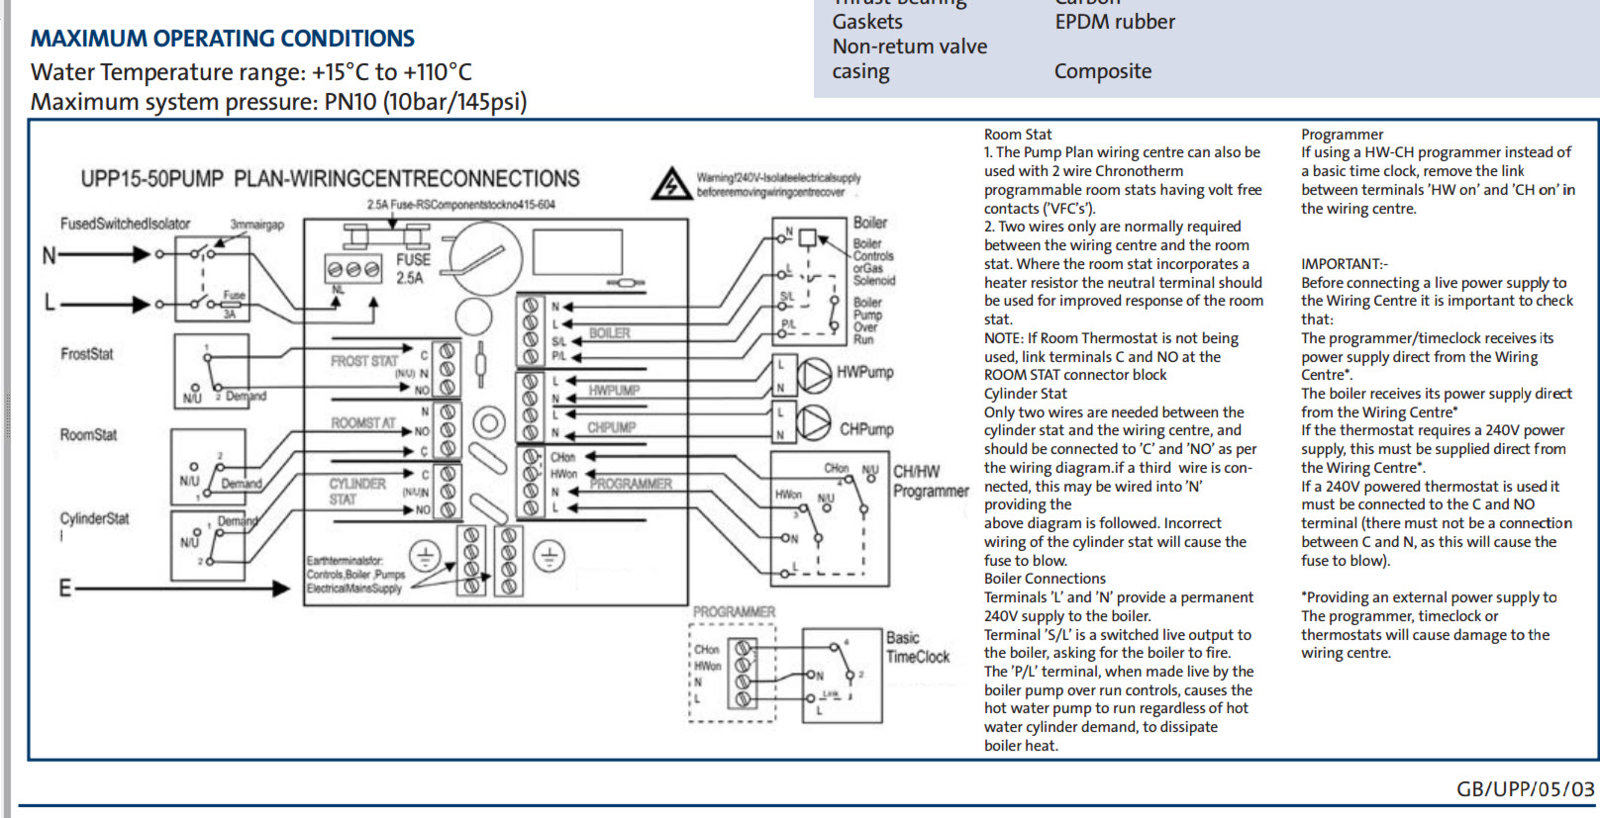 Grundfos Pump Plan Wiring Diagram